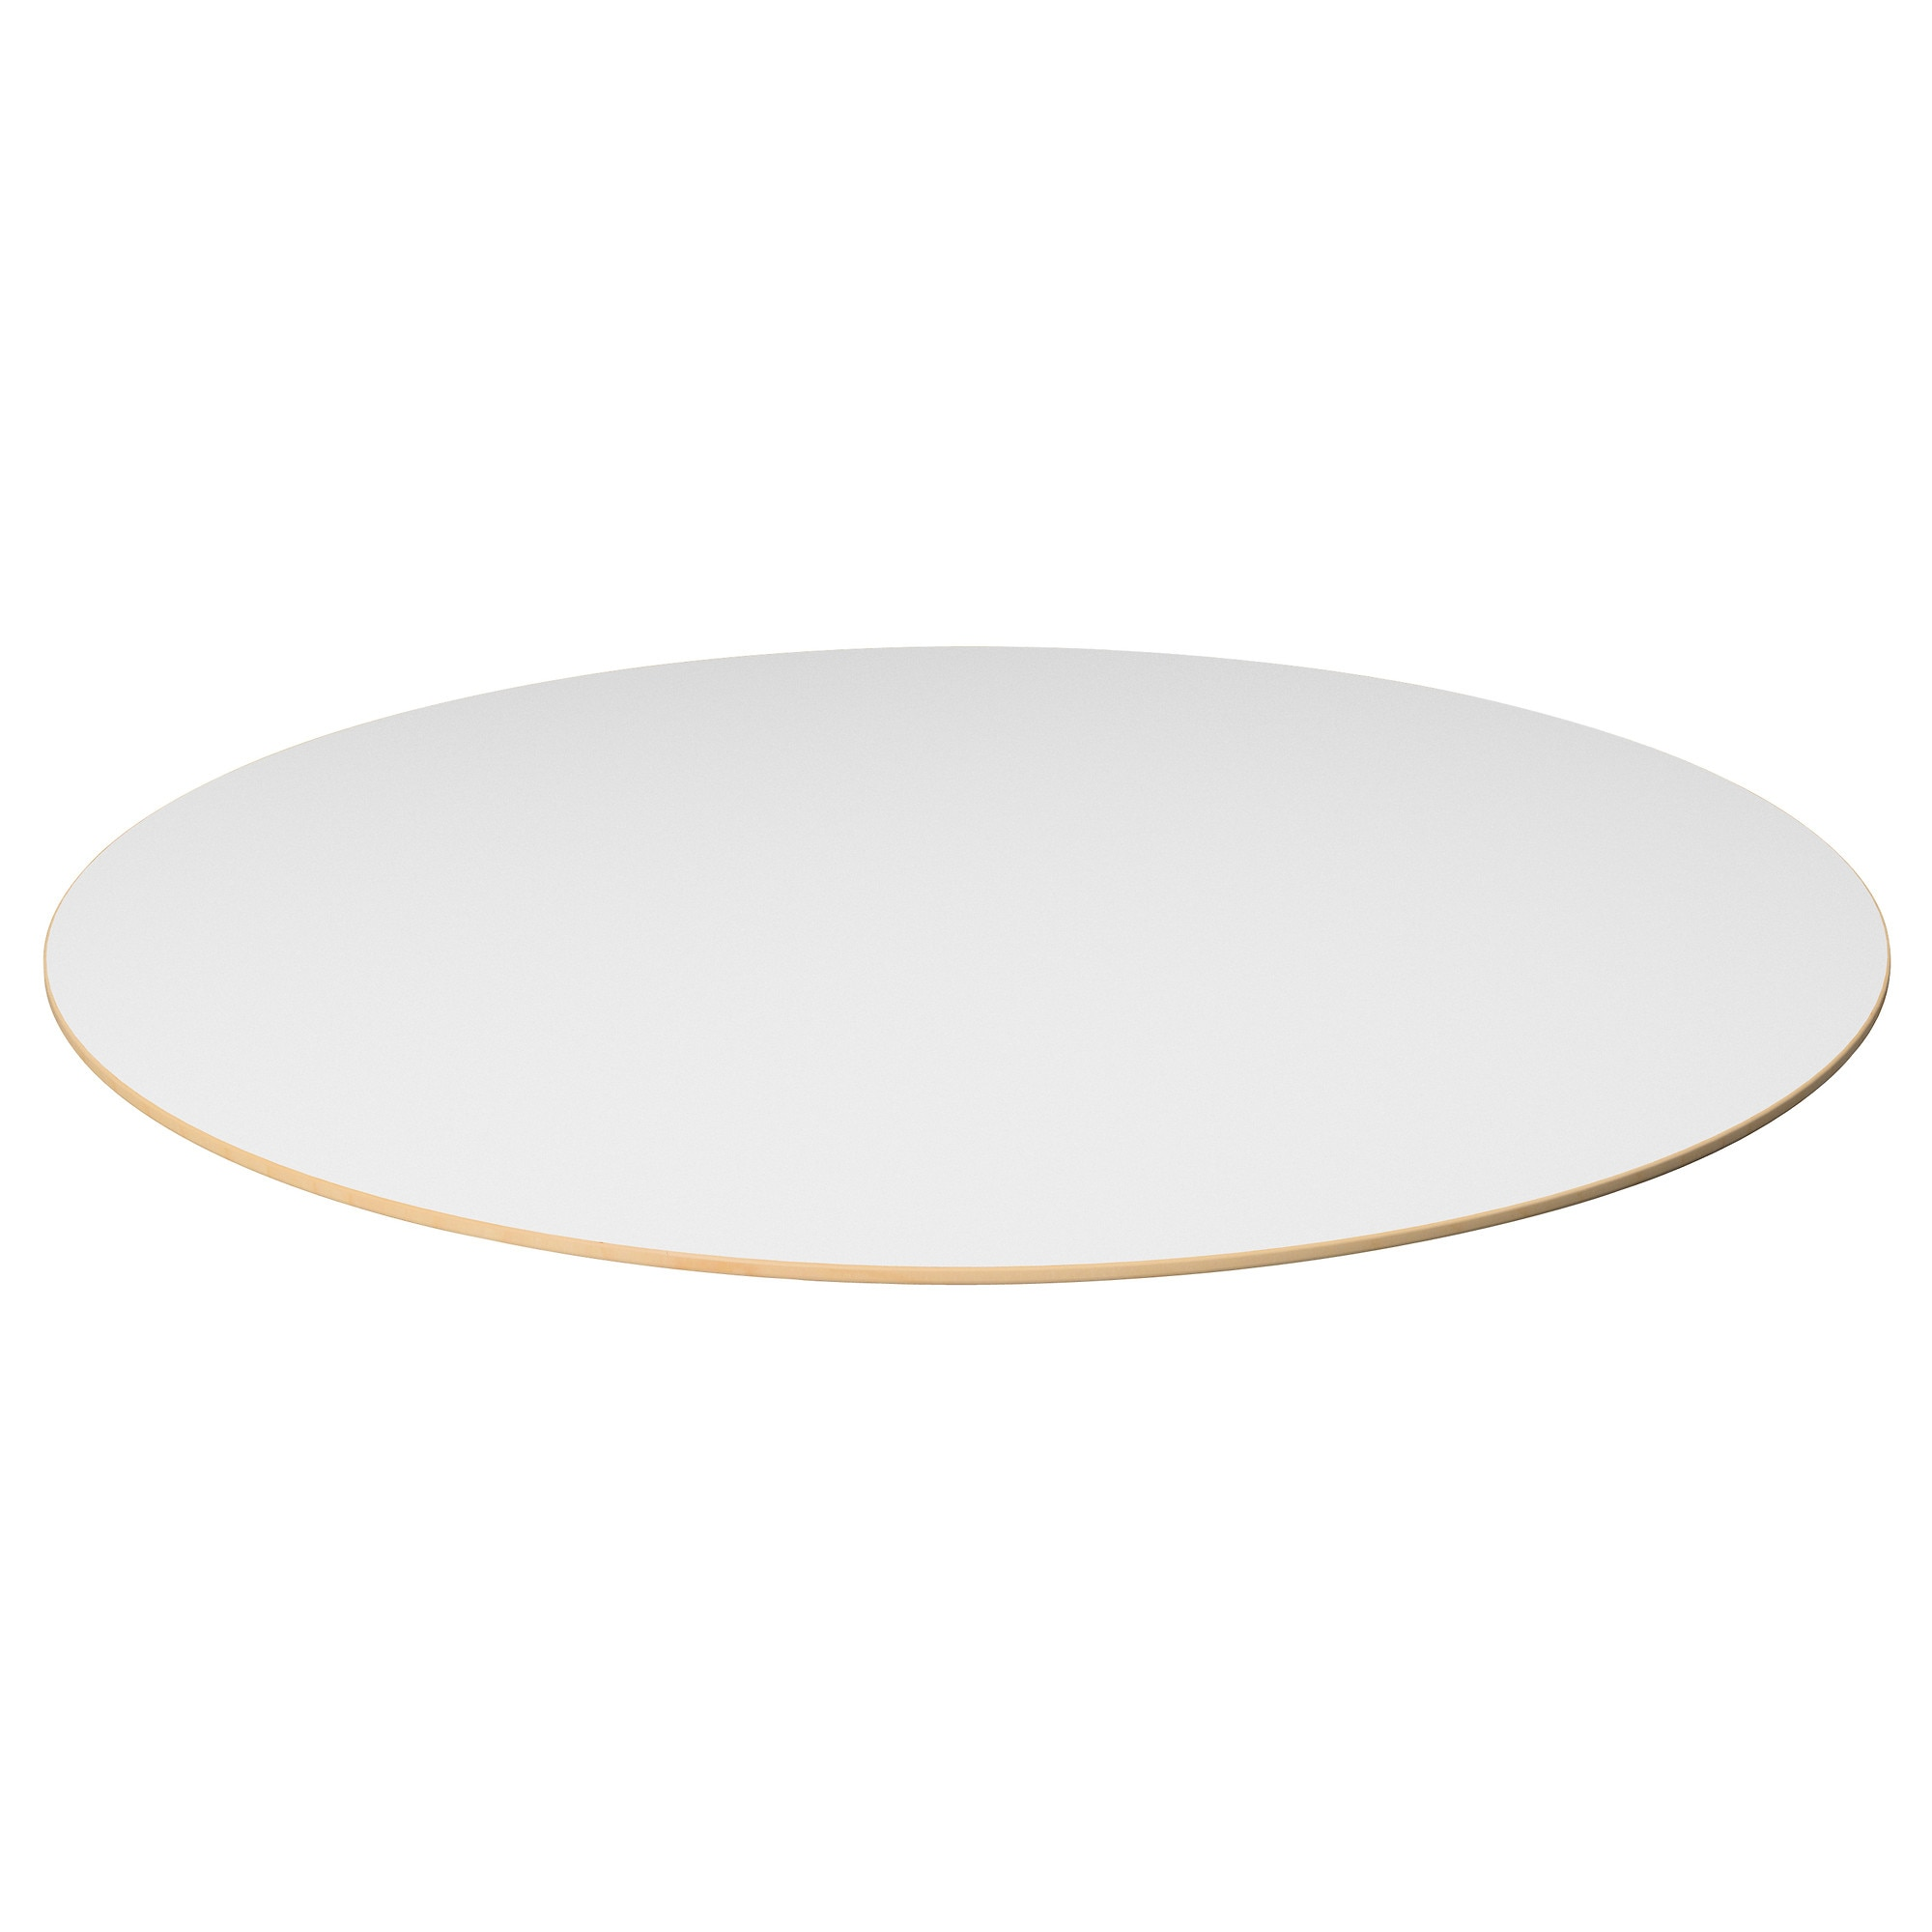 Plateau de verre sur mesure castorama maison design for Table ronde escamotable